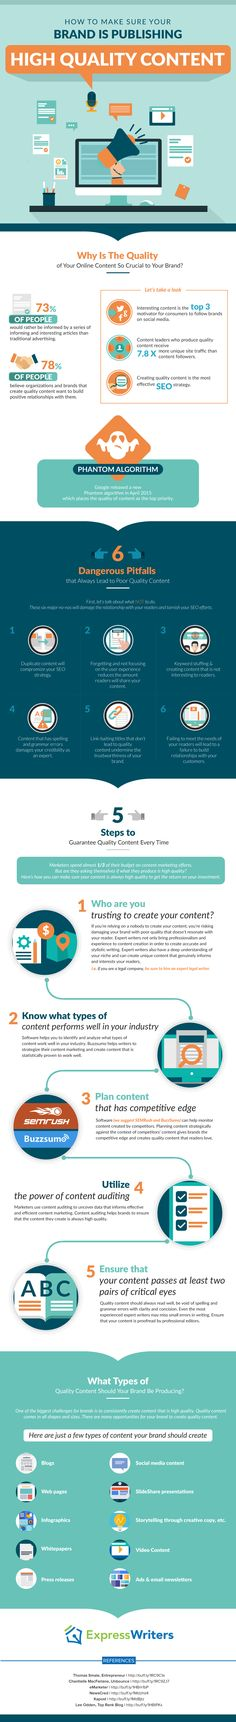 This infographic, designed and written by our team at Express Writers, shows how brands can maintain a high quality content presence and avoid the pitfalls.